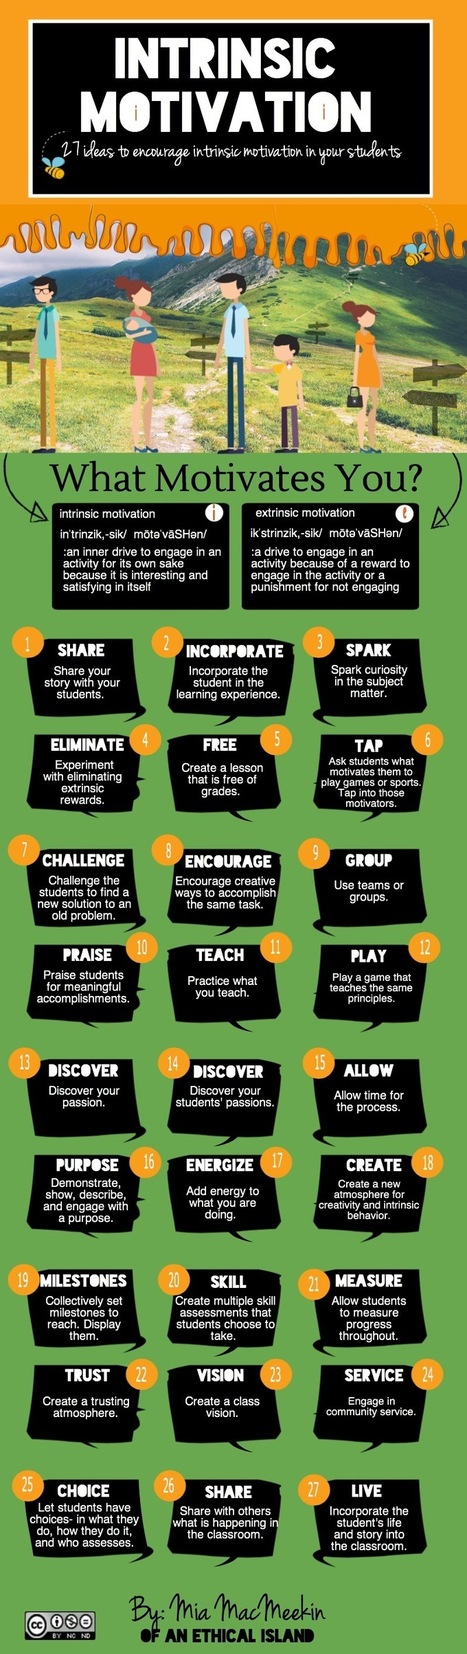 Intrinsic Motivation for the Classroom | TechLib | Scoop.it